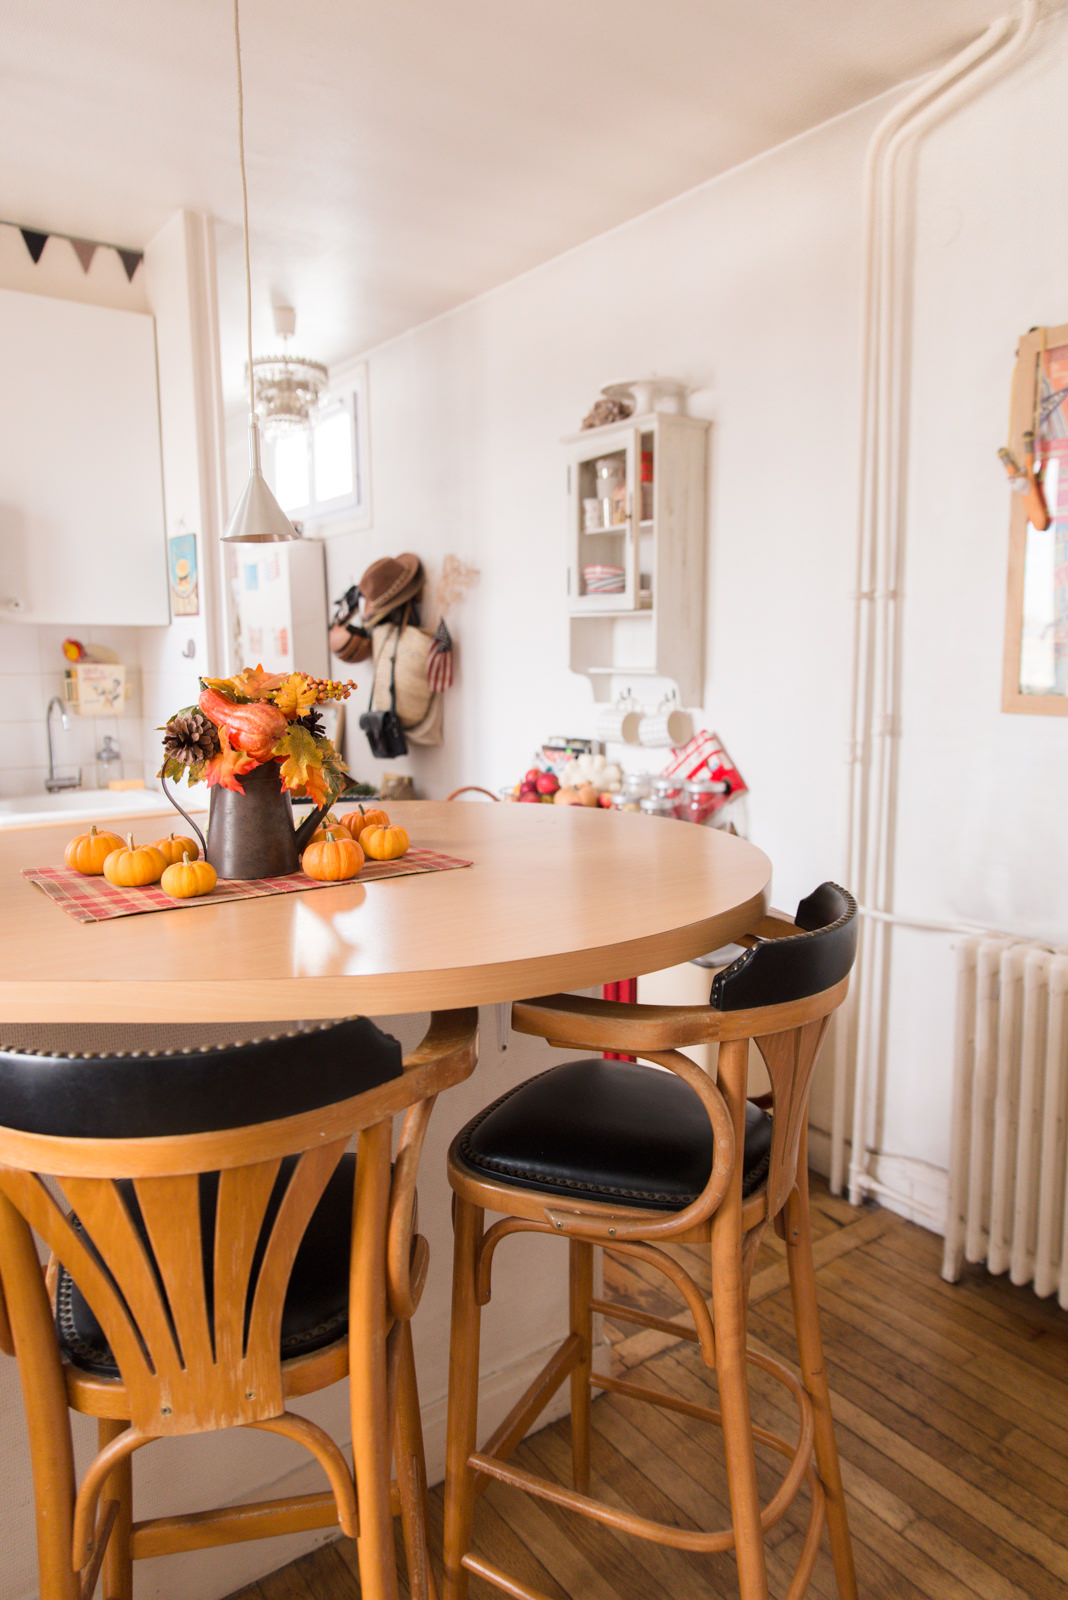 Blog-mode-And-The-City-Lifestyle-Deco-Appartement-Parisien-Mode-And-The-City-21 copie